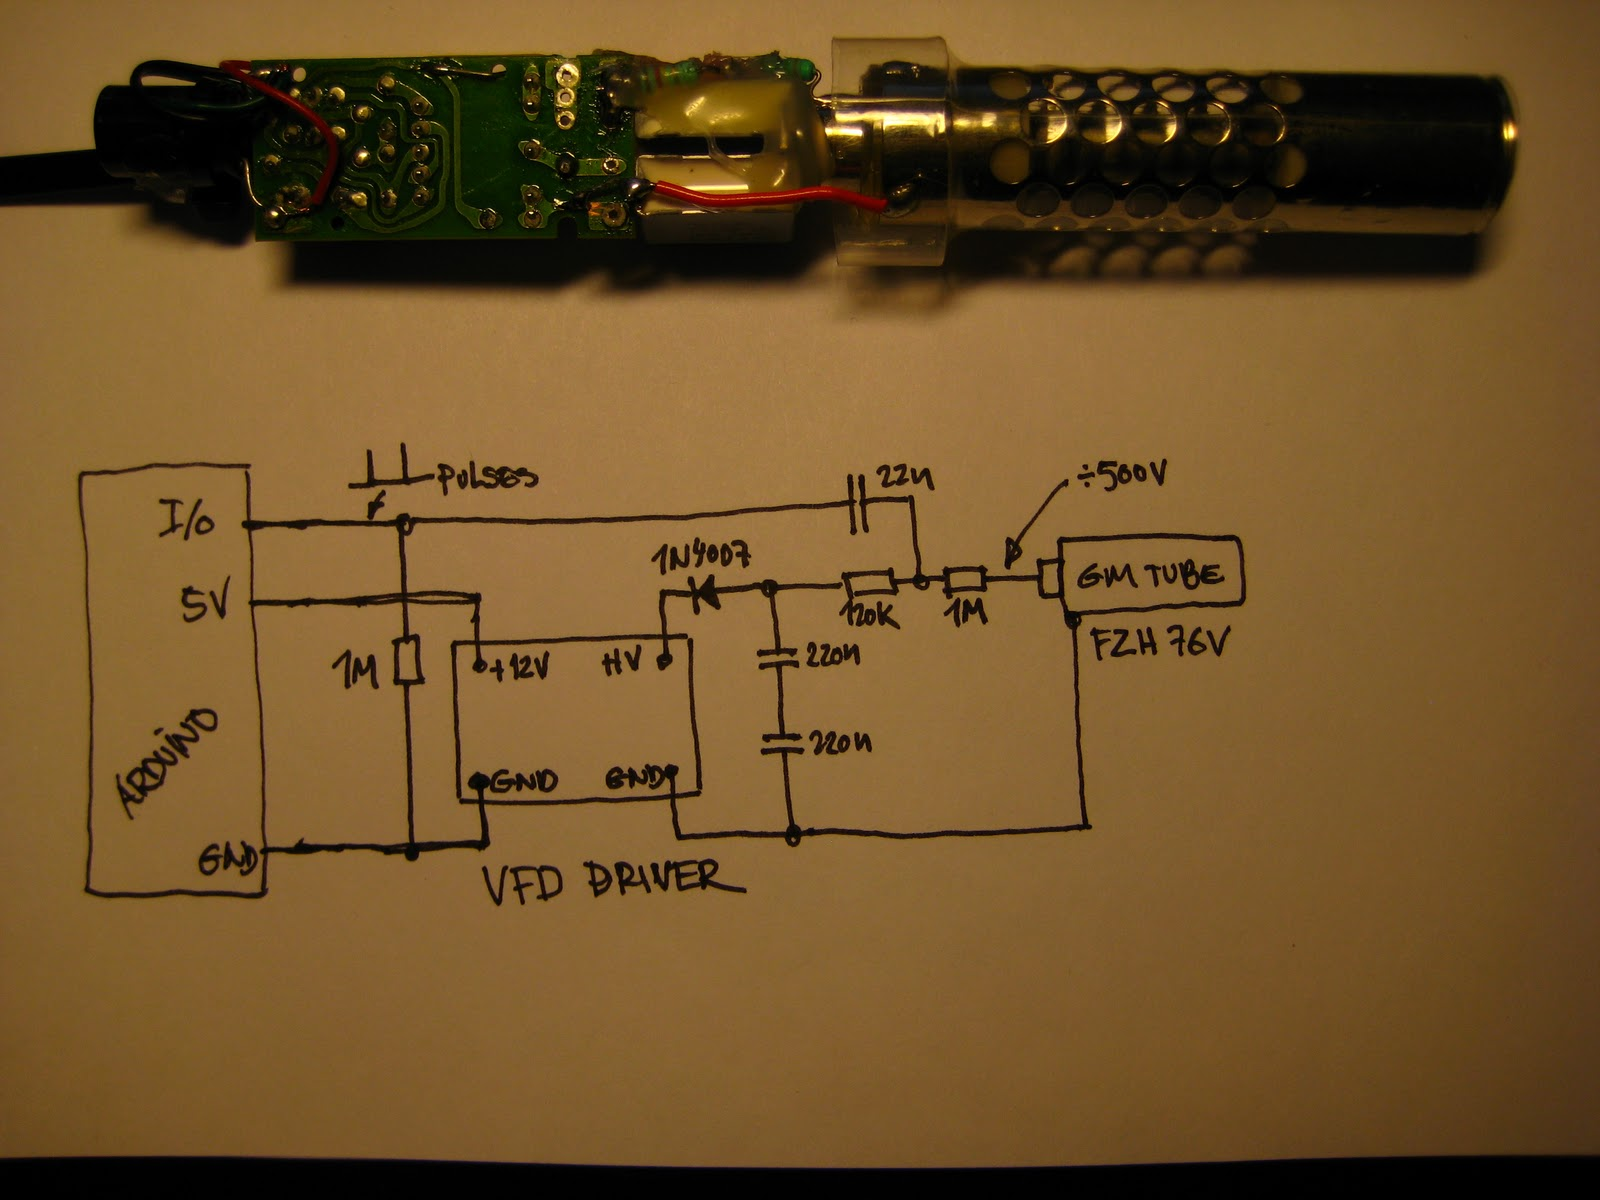 Dzls Evil Genius Lair Geiger Counter From Recycled Stuff Diagram